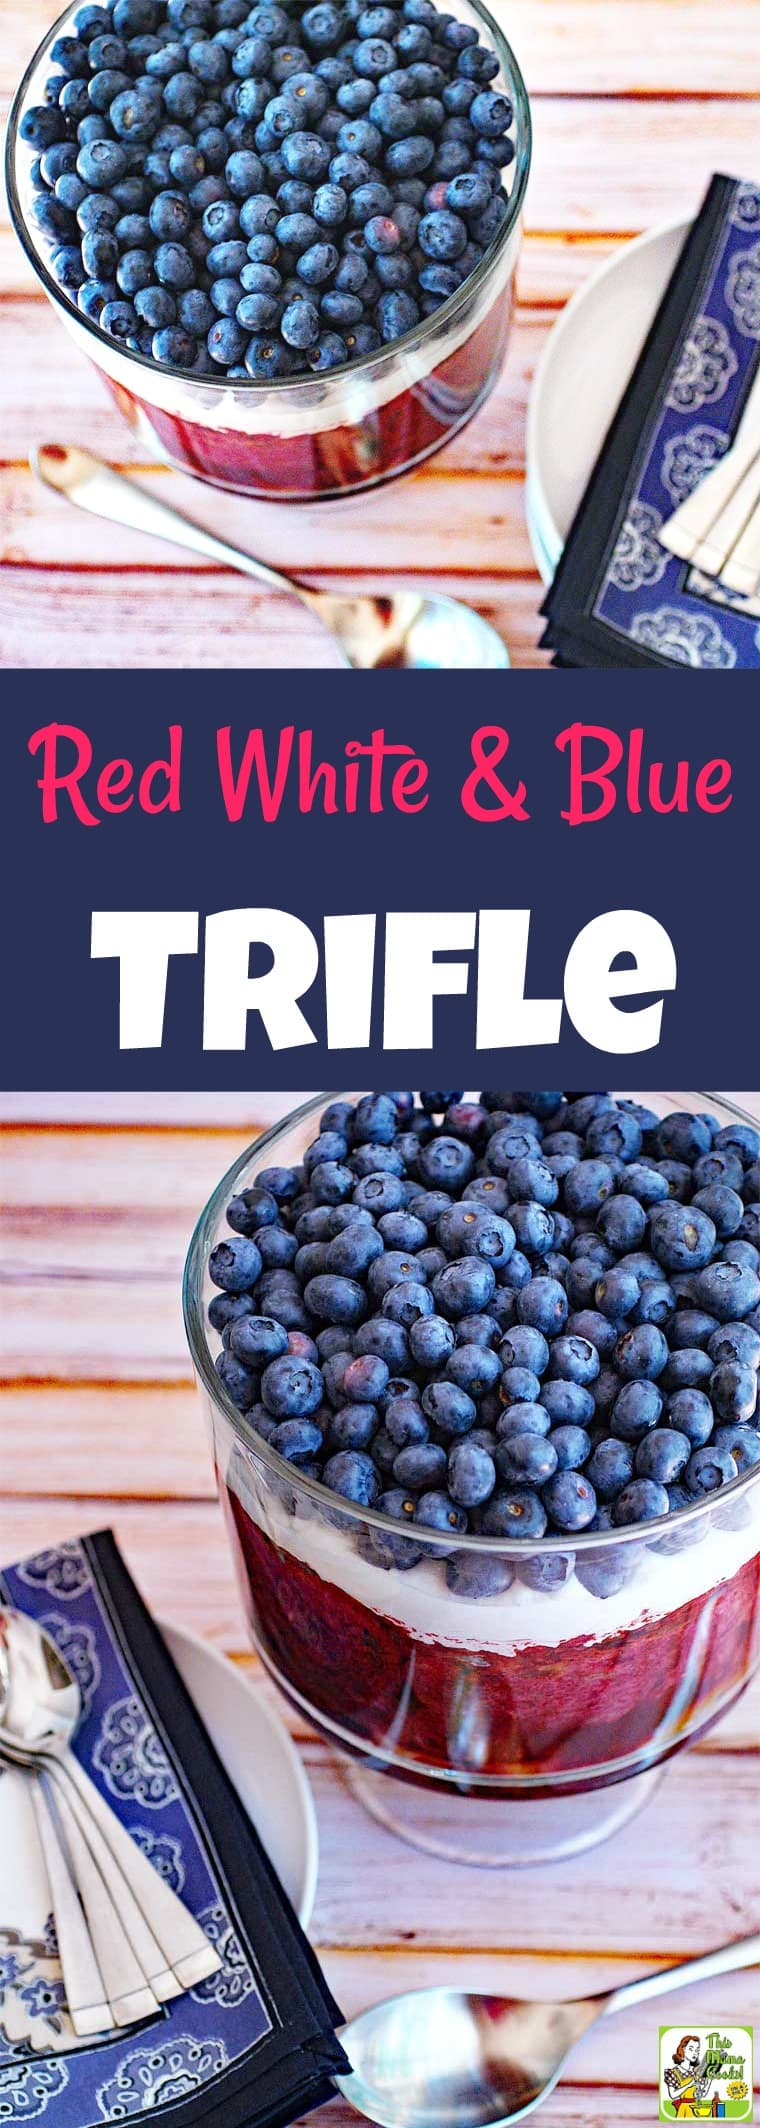 Make a Red White and Blue Trifle for your next party! This easy trifles recipe uses three types of healthy berries – blueberries, blackberries, and raspberries. It\'s reduced calorie and using non-dairy topping and gluten-free bread, too. It\'s the perfect trifle berry dessert for entertaining! #recipe #trifle #dessert #berries #blueberries #raspberries #fourthofjuly #easy #dessertrecipes #recipeoftheday #healthyrecipes #easyrecipes #glutenfree #recipe #memorialday #cookout #redwhiteandblue